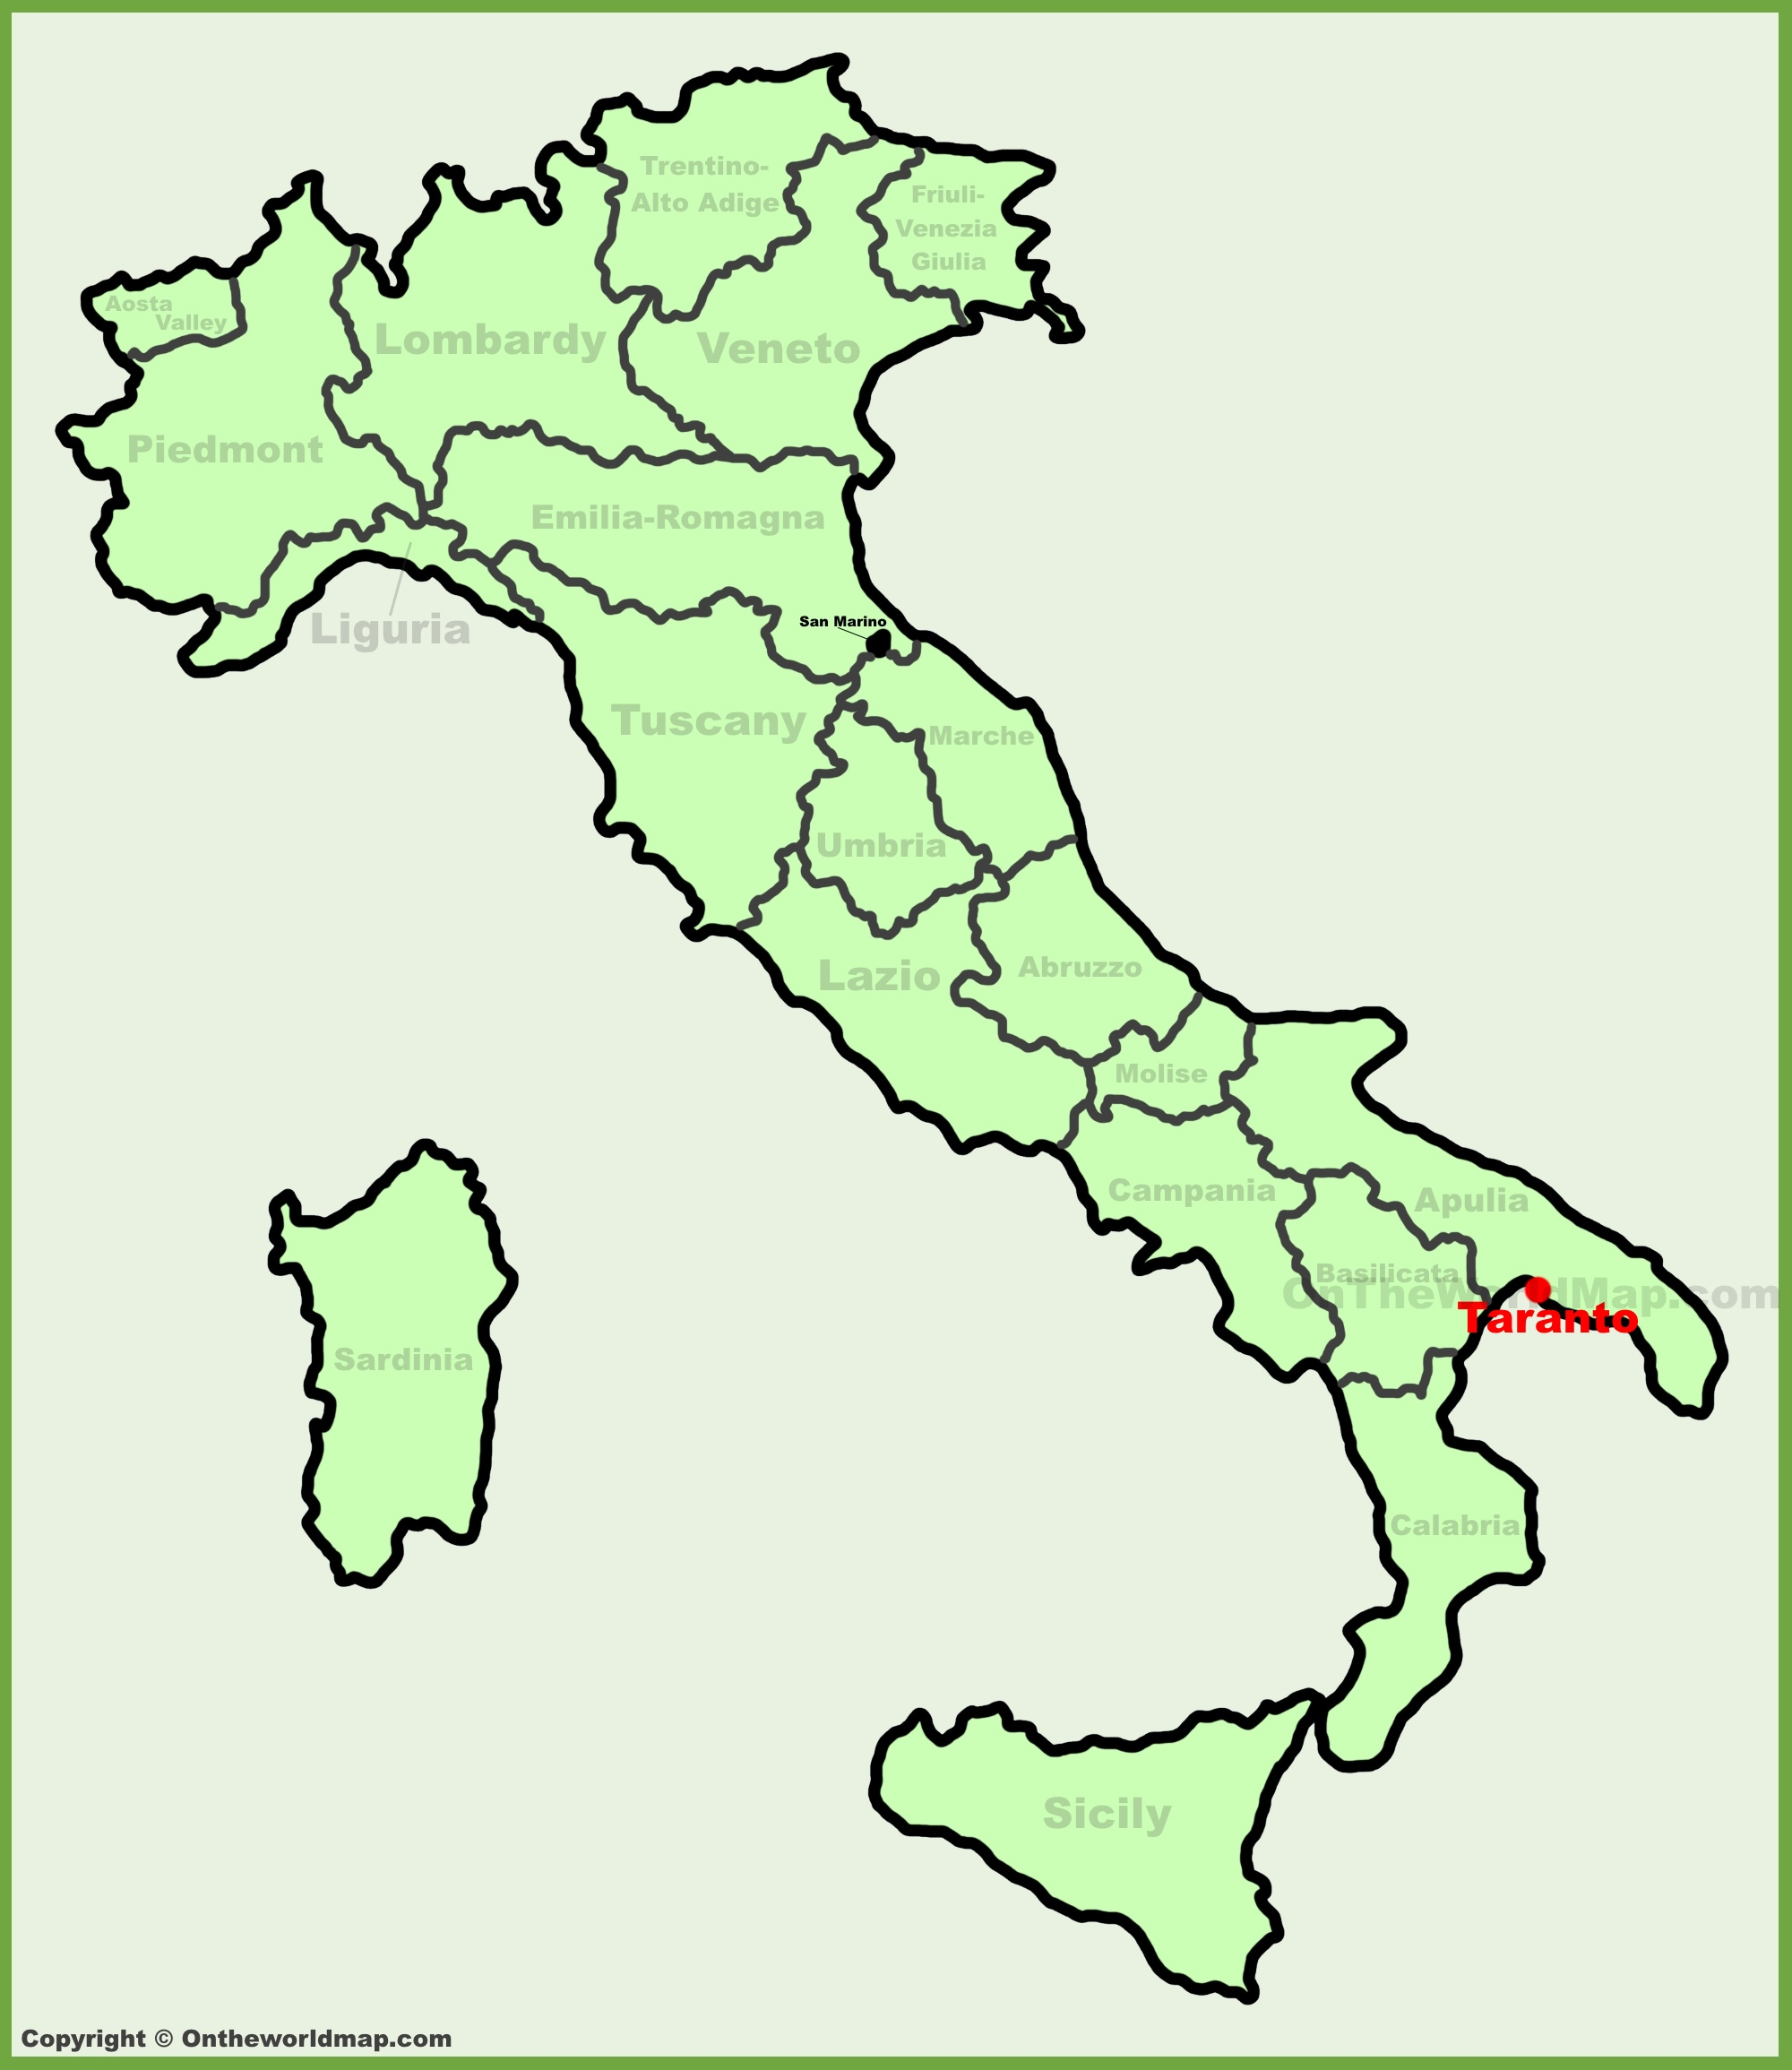 Taranto location on the Italy map